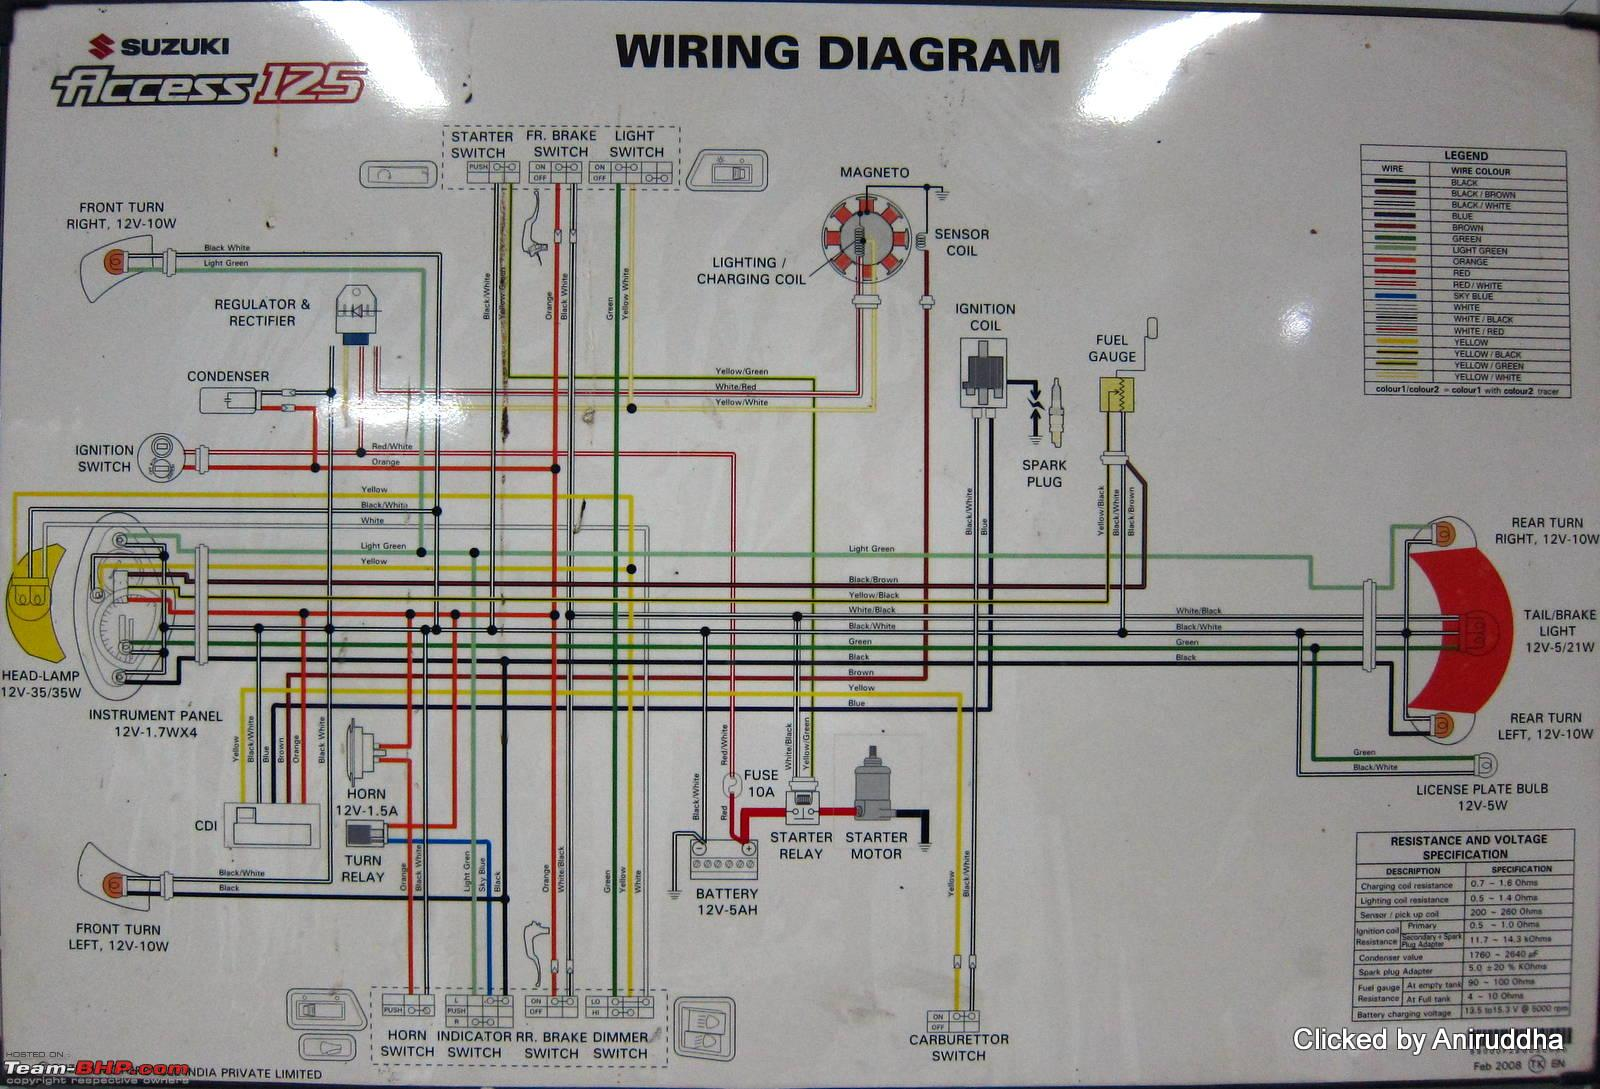 air horn wiring schematic with Suzuki Rv 125 Wiring Diagram on Automotive Electrical Relays Wiring also Suzuki Rv 125 Wiring Diagram also P 0900c1528006093b likewise Discussion T6595 ds570776 additionally Wiring Diagrams.